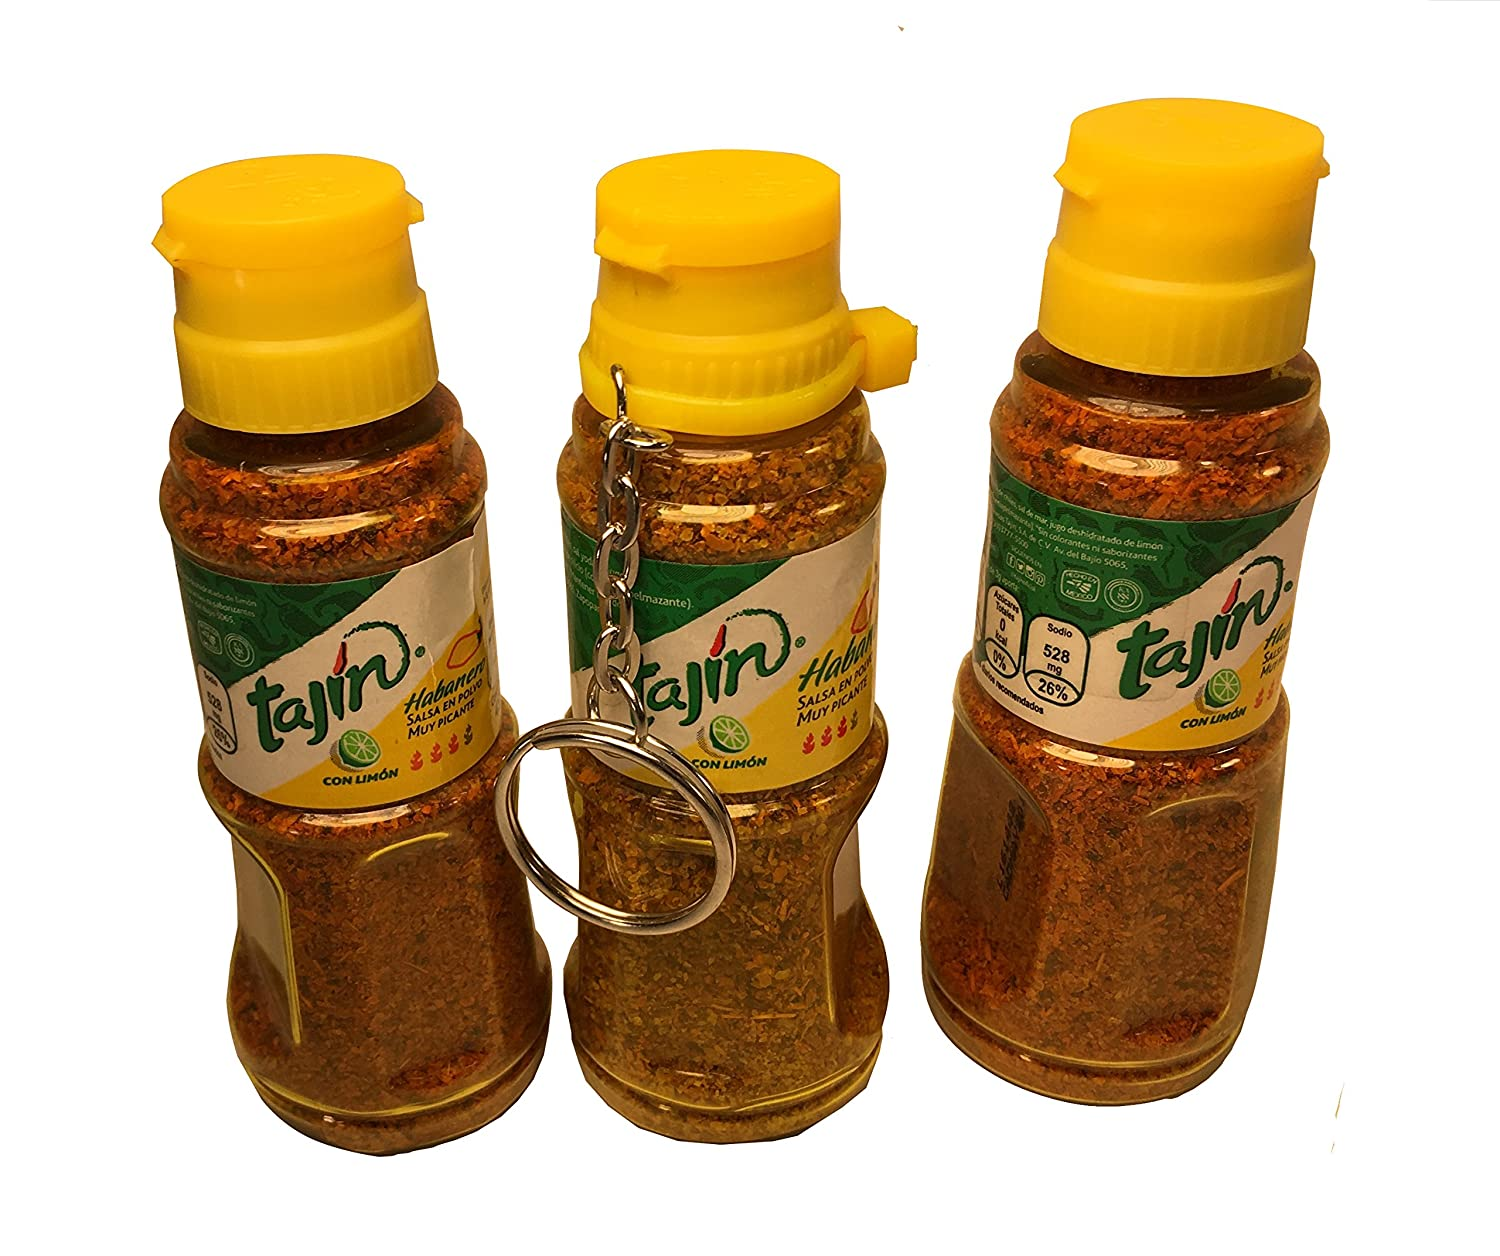 Amazon.com : Tajin Habanero Flavor (Pack of 3) including one Key Chain Version Hot Mexican Seasoning : Grocery & Gourmet Food